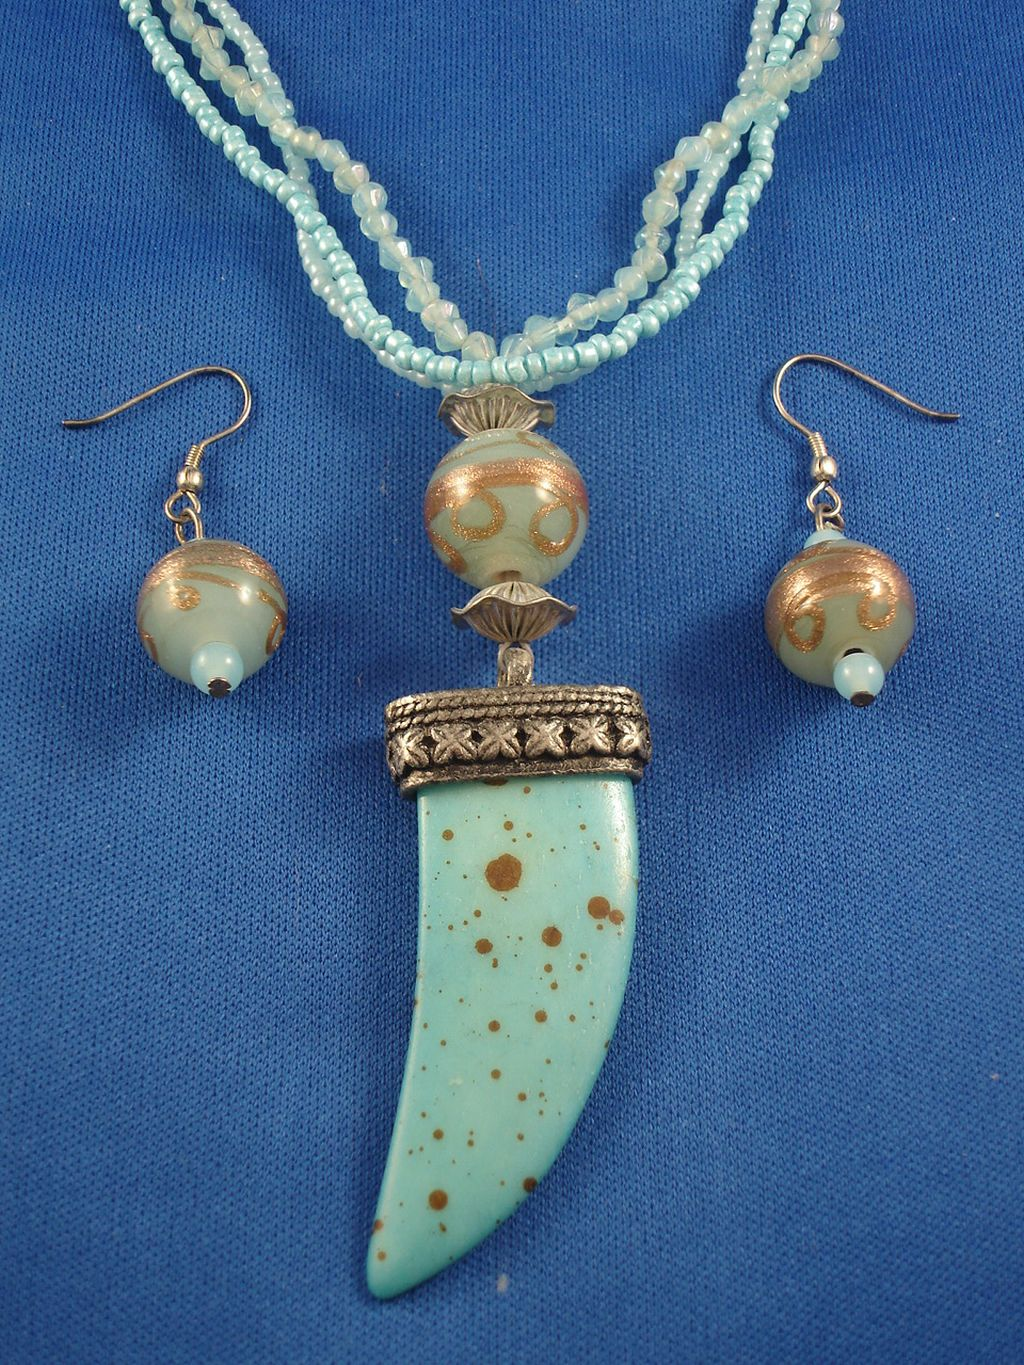 Antique Style Turquoise Horn Pendant Set of Necklace & Earrings, Beads